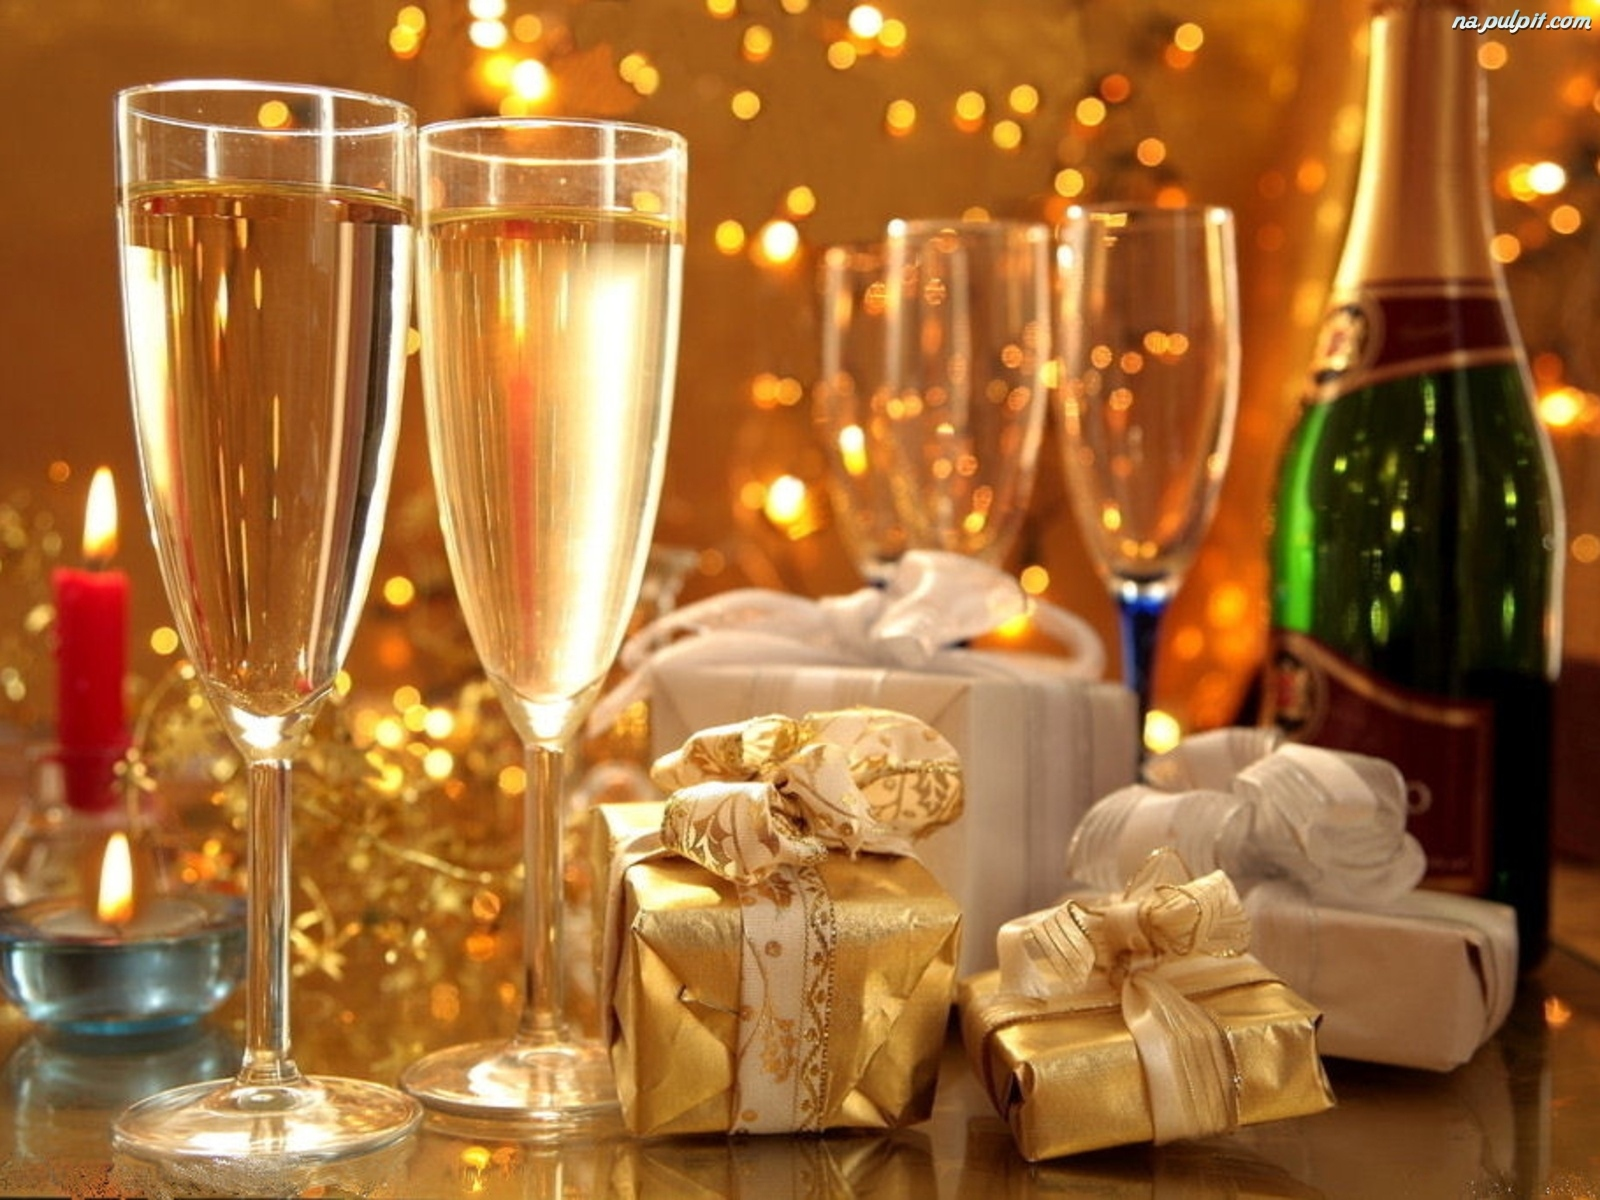 Happy New Year Champagne Golden Image Hd